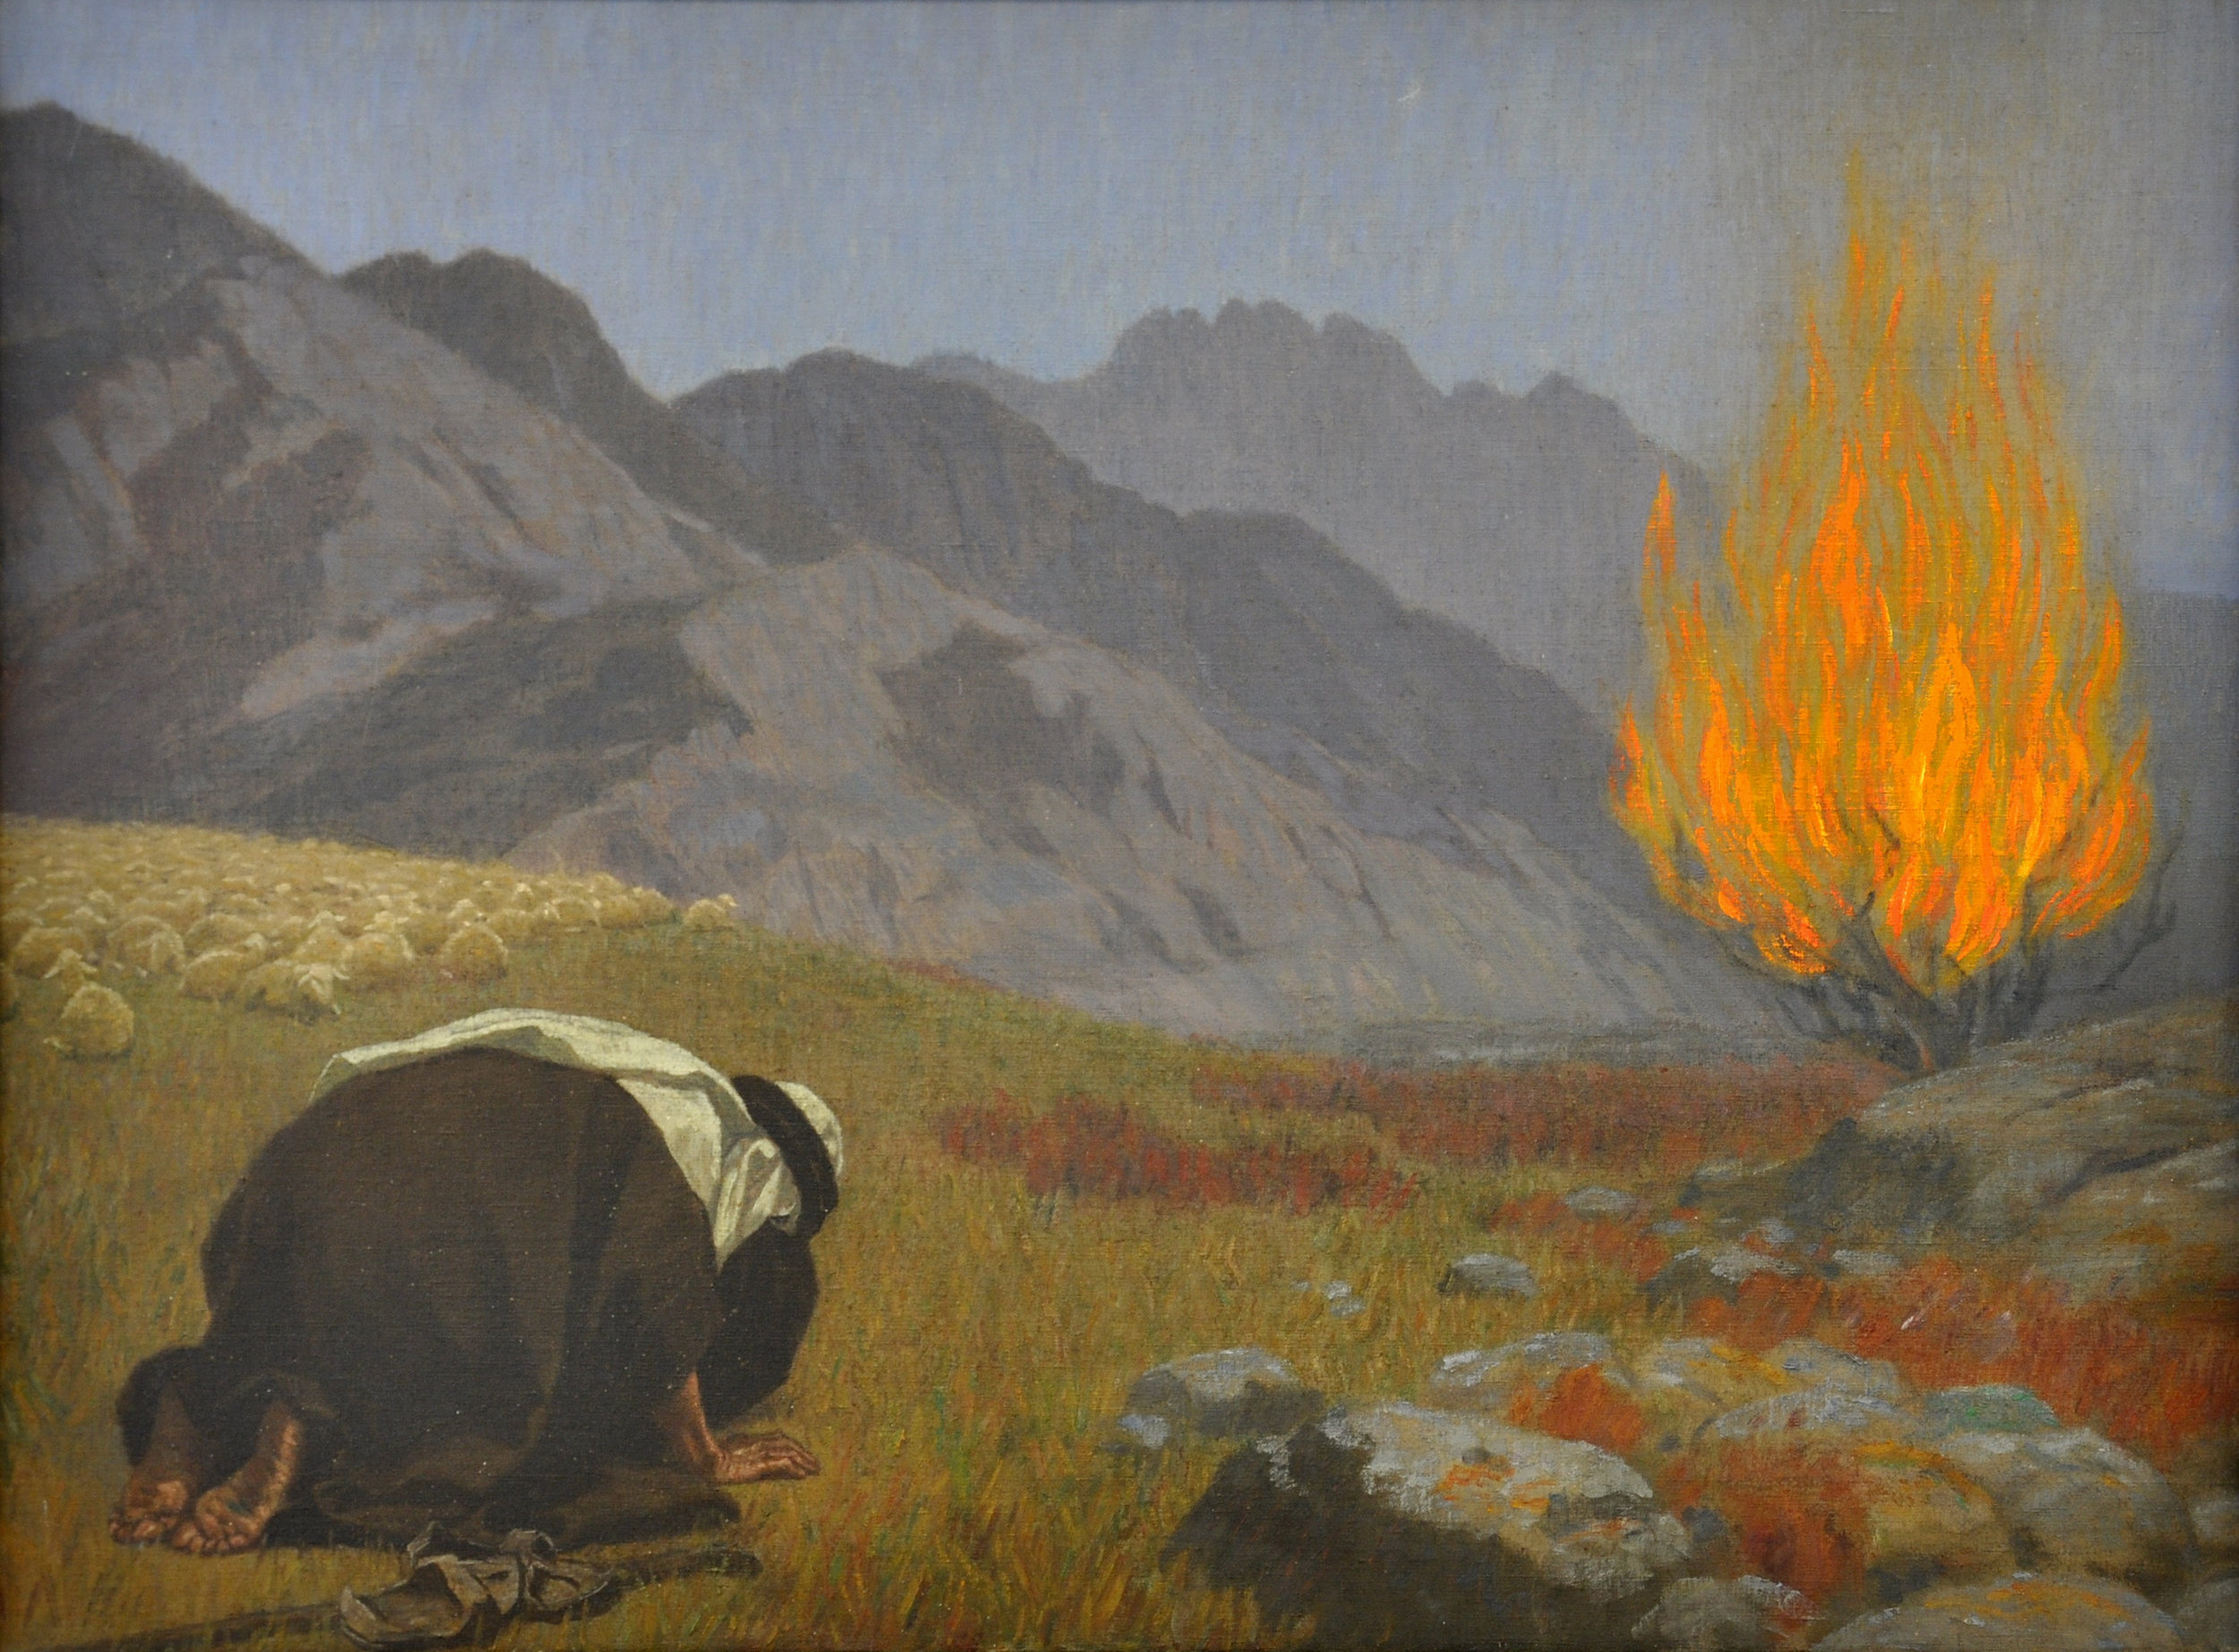 """""""For our God is a consuming fire."""" - Hebrews 12:29(NAB)  Gebhard Fugel [Public domain], from Wikimedia Commons"""